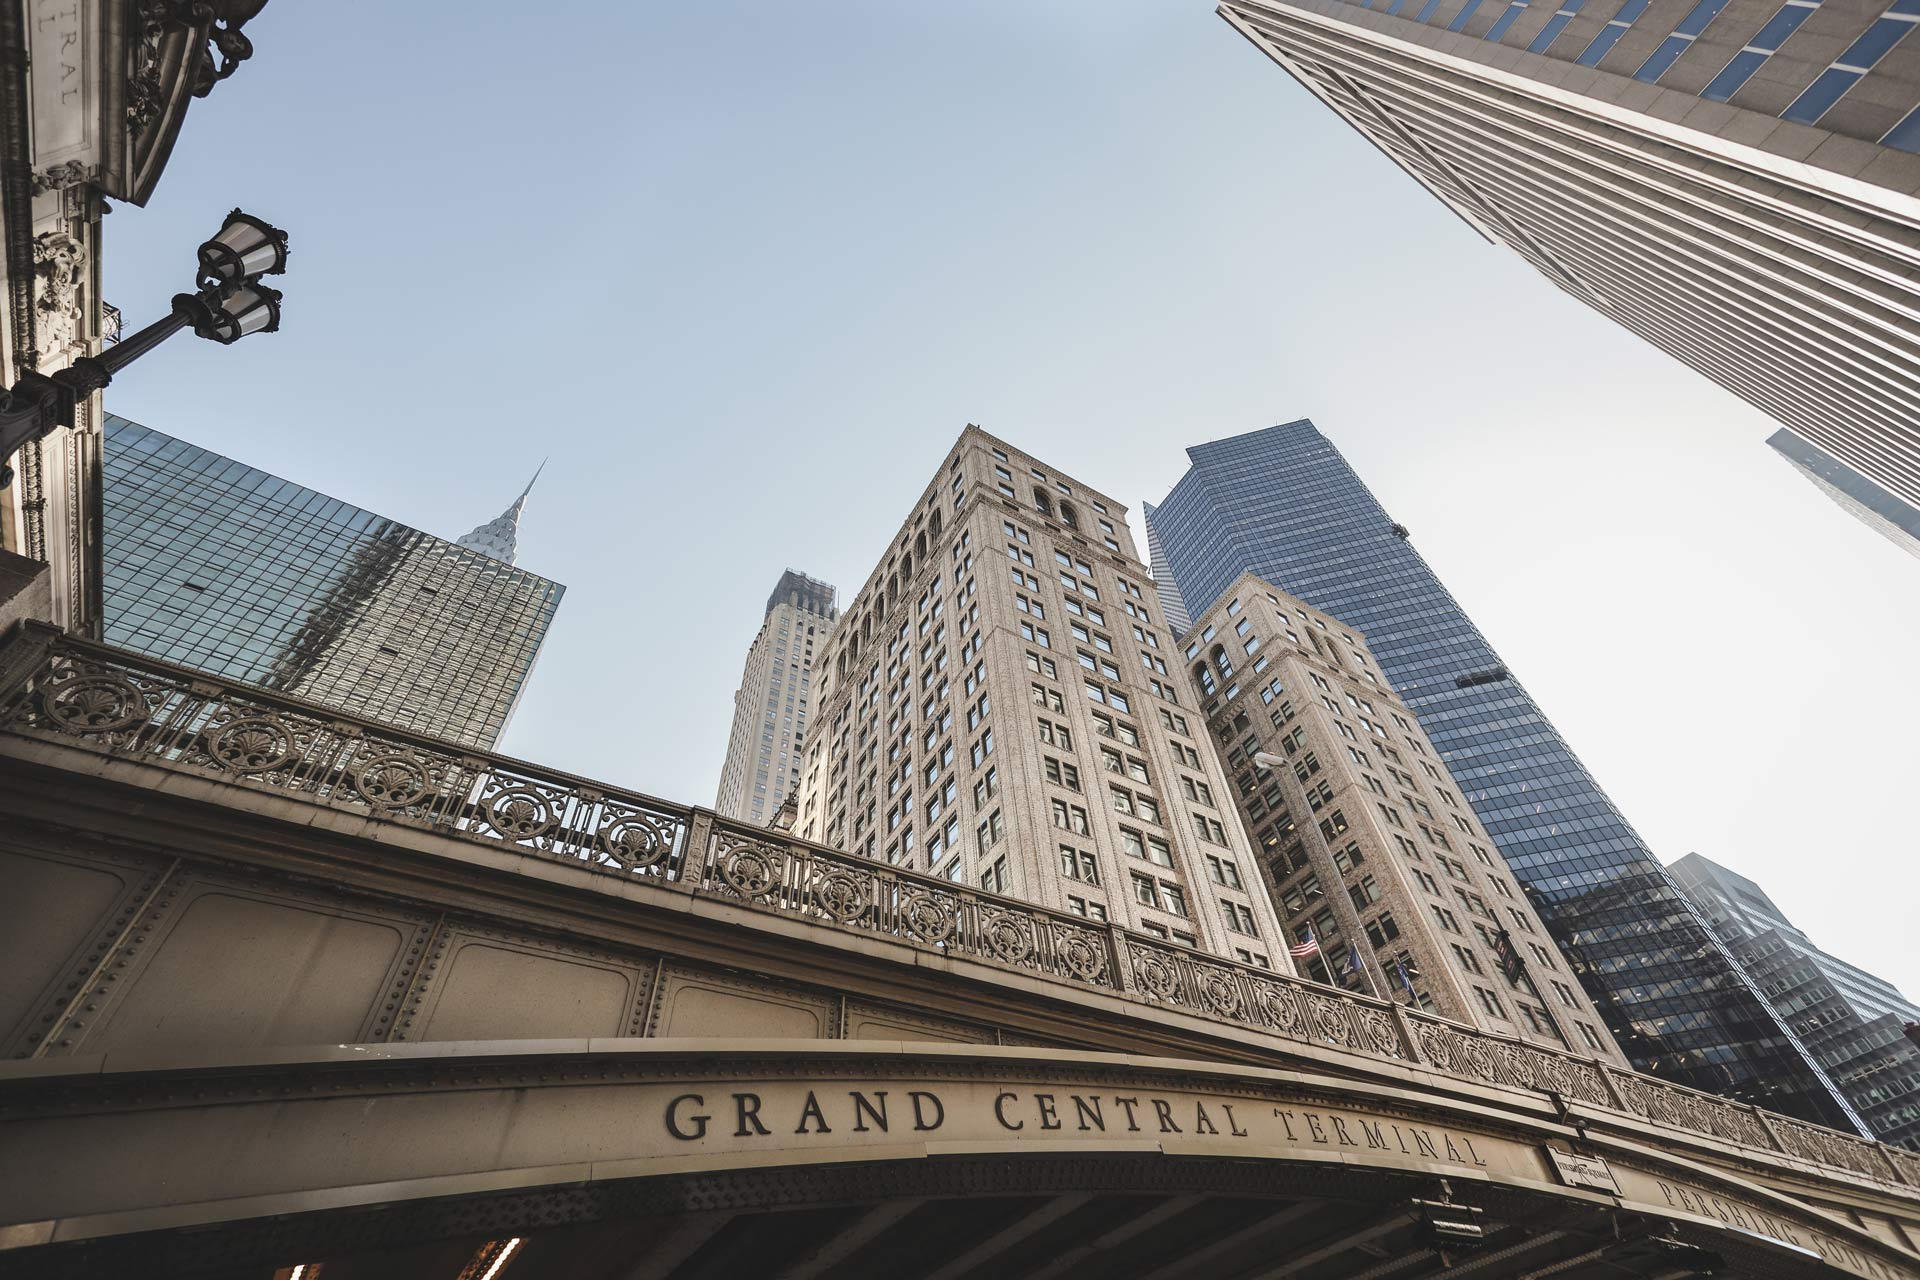 Grand-Central-Terminal-Midtown-Manhattan-New-York-City